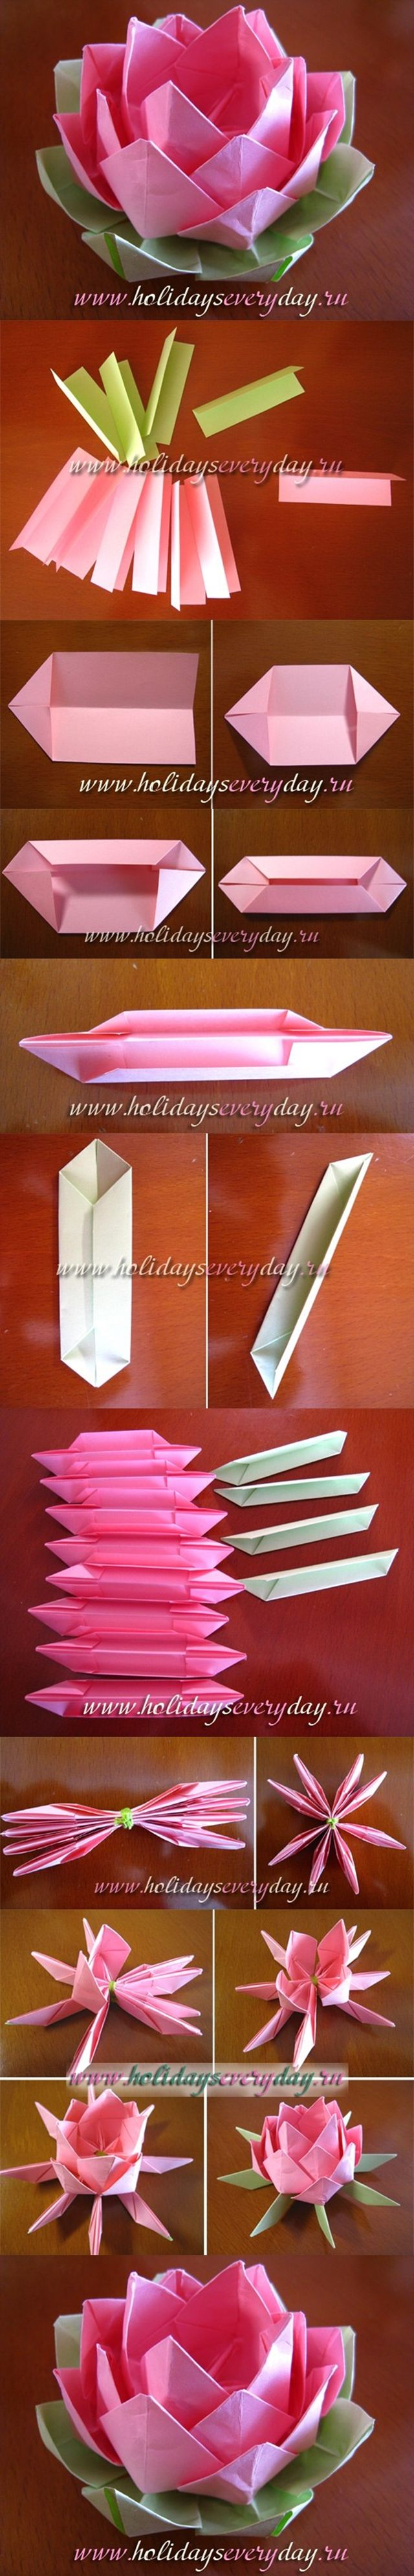 DIY Origami Paper Lotus Flower | www.FabArtDIY.com or Facebook ==> https://www.facebook.com/FabArtDIY